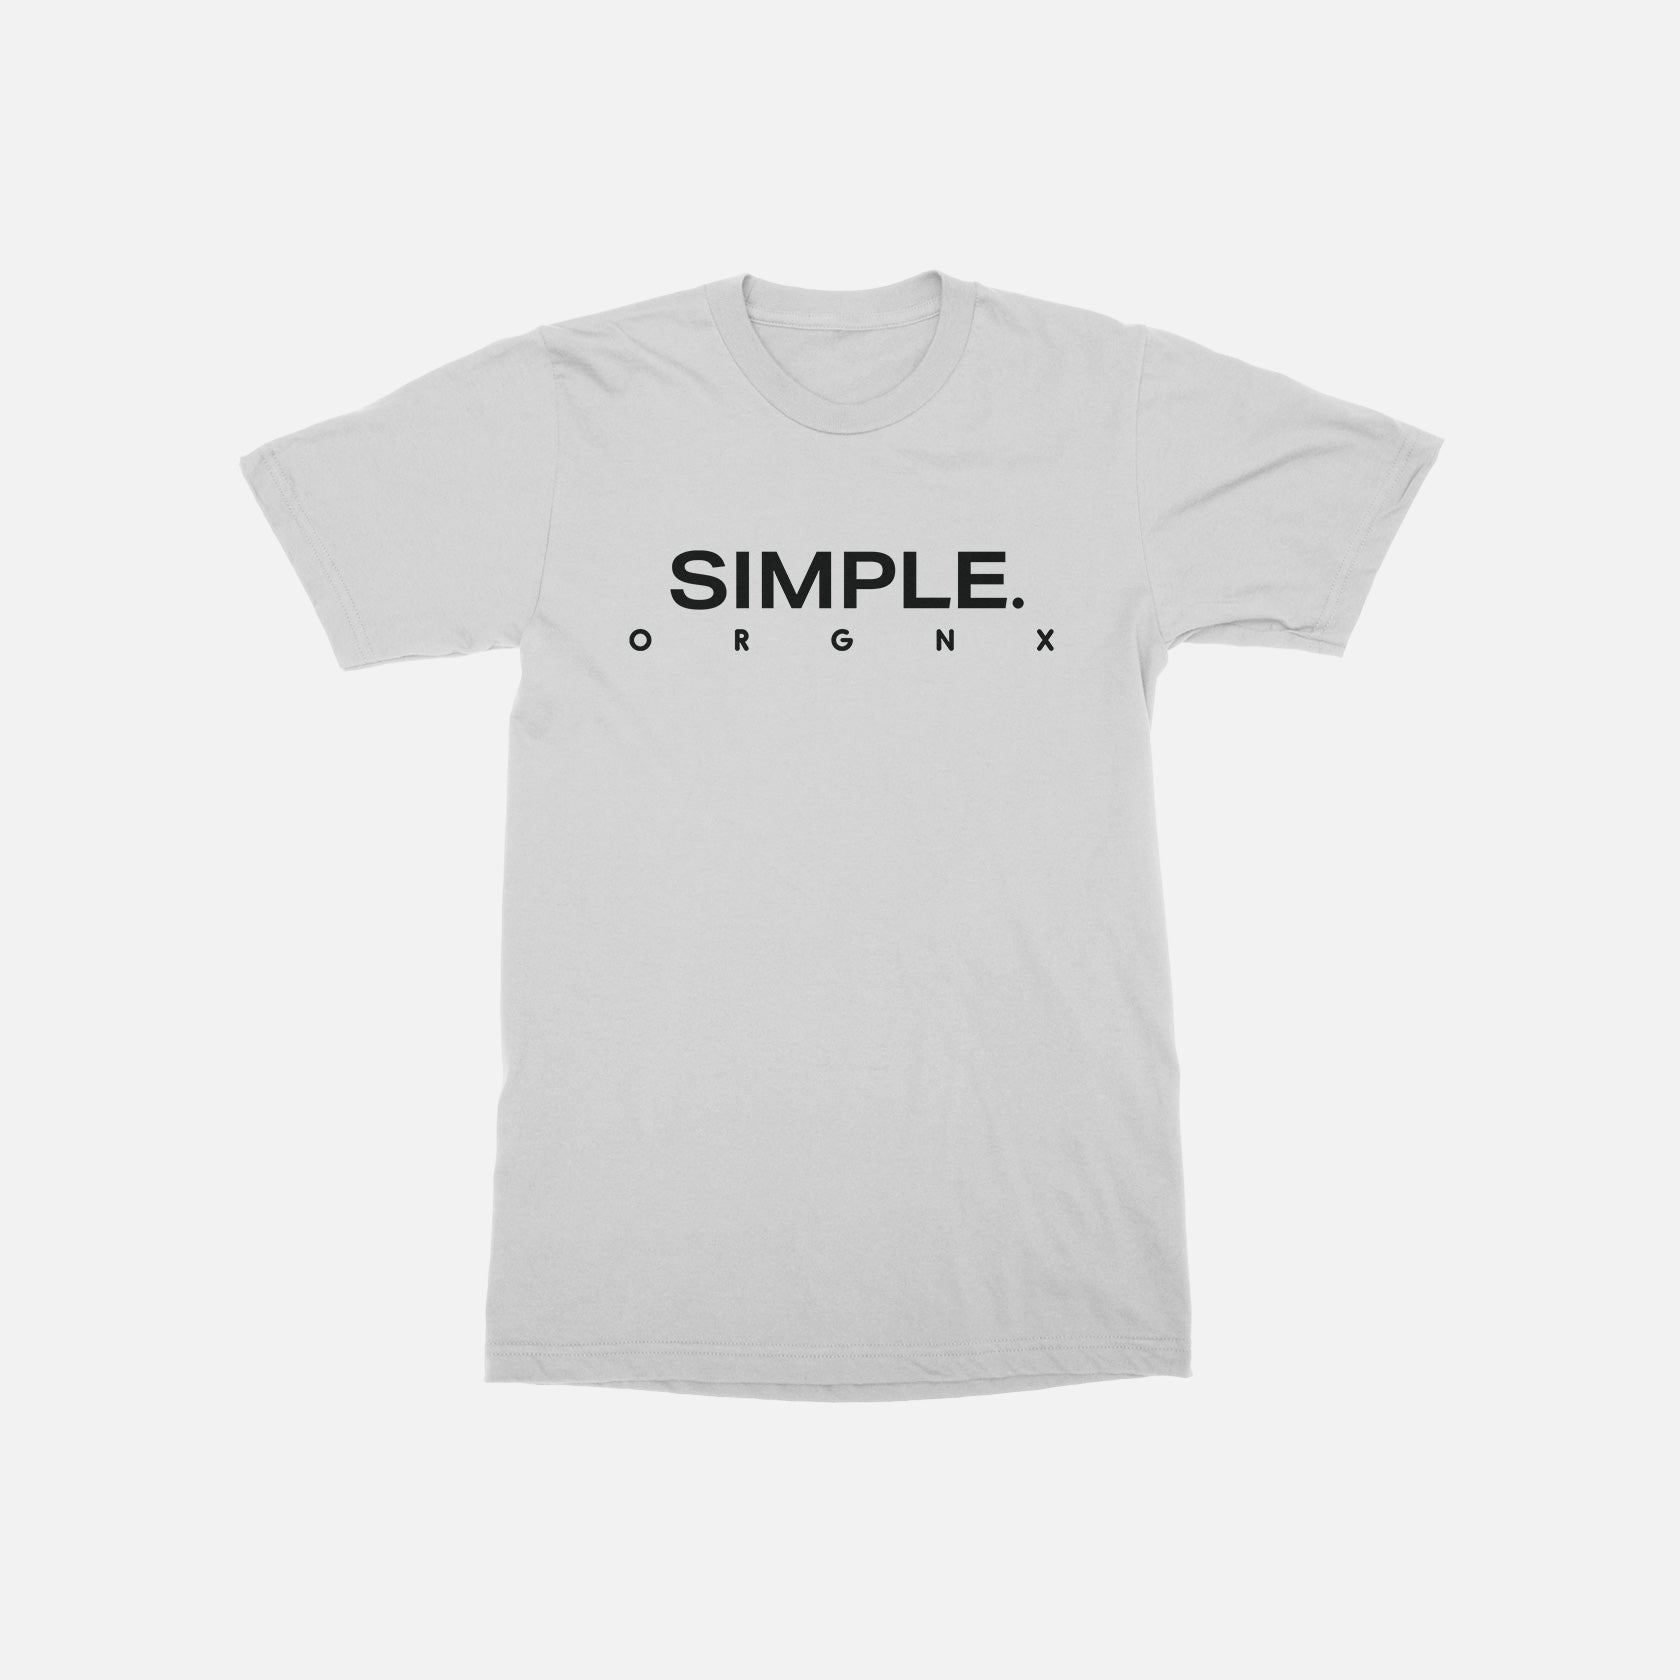 ORGNX Simple T-Shirt White Front